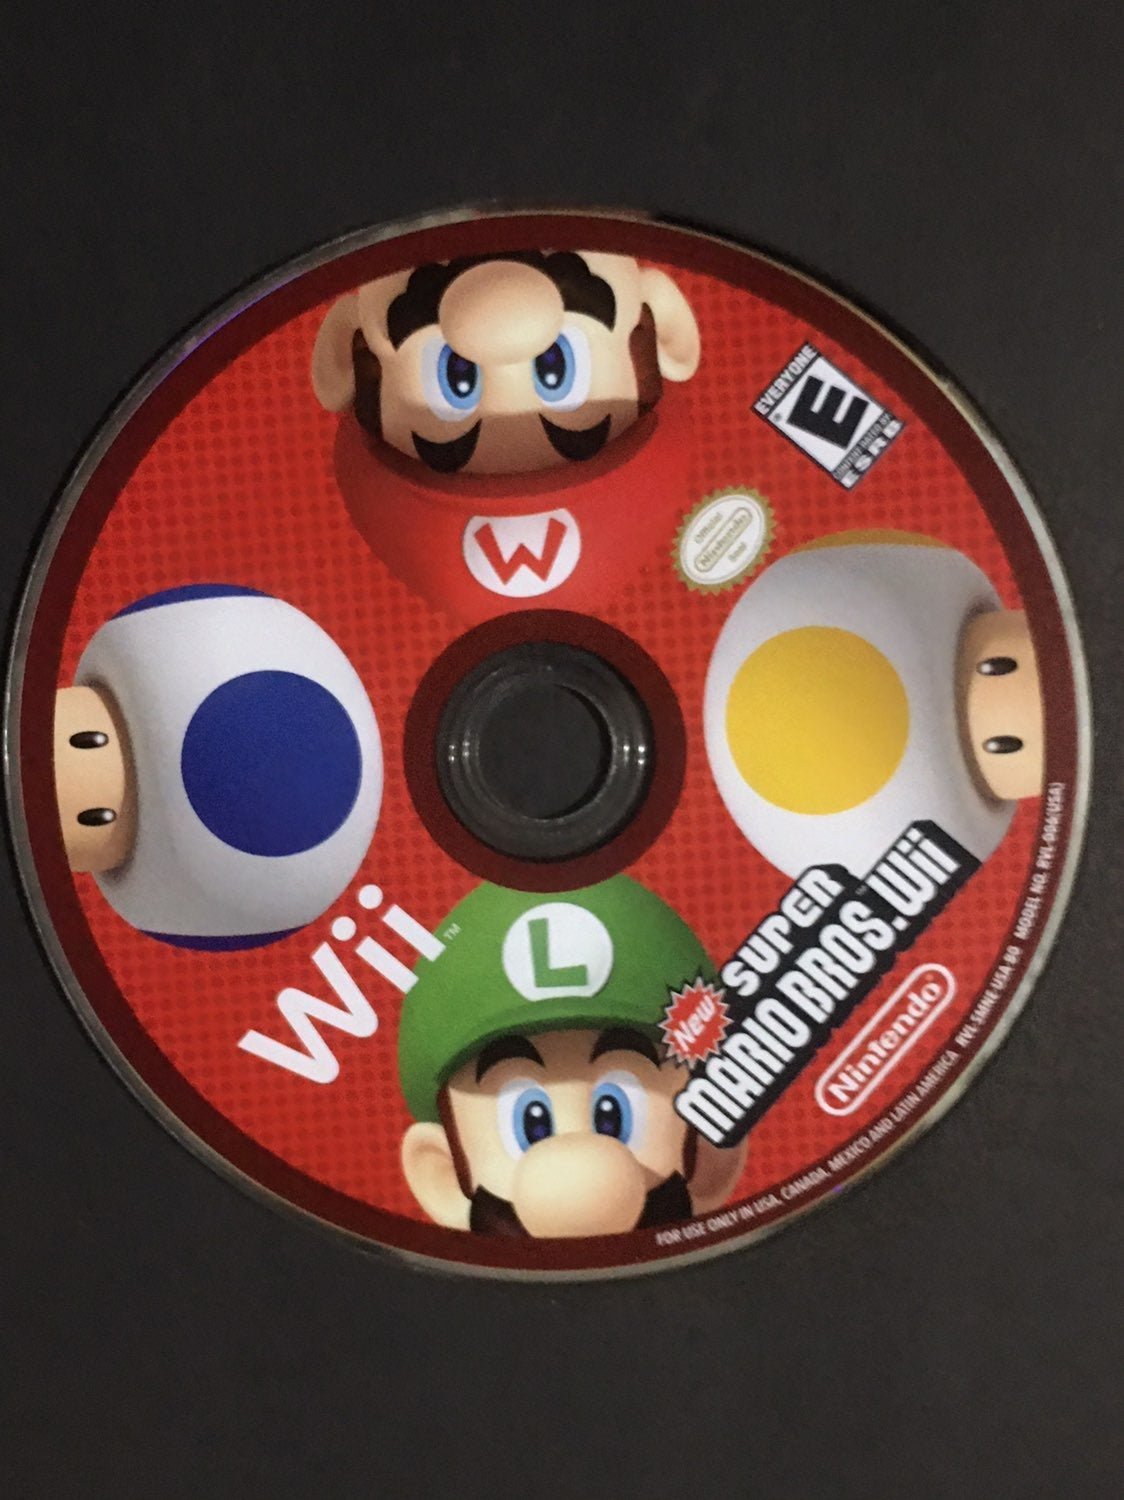 SUPER MARIO BROS. Game Disc!